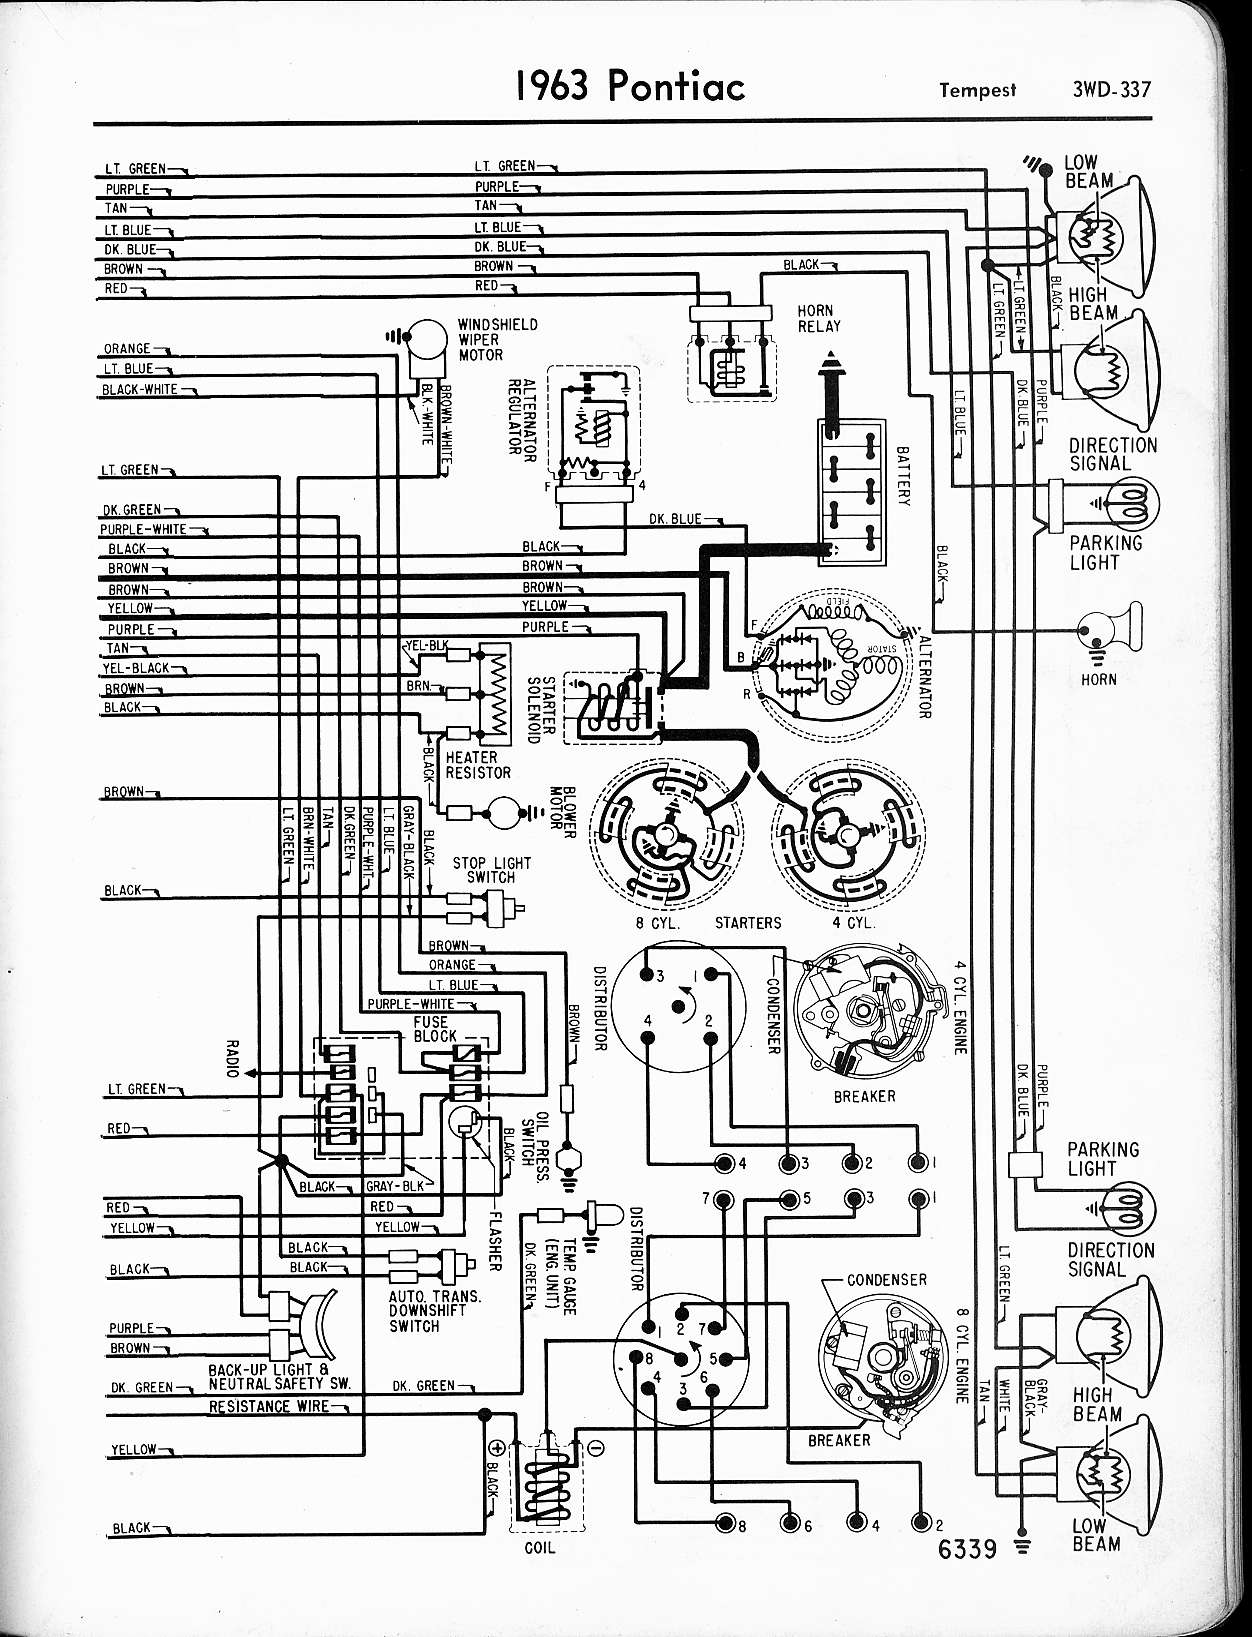 1960 Chevy Impala Radio Wiring Diagram • Wiring Diagram